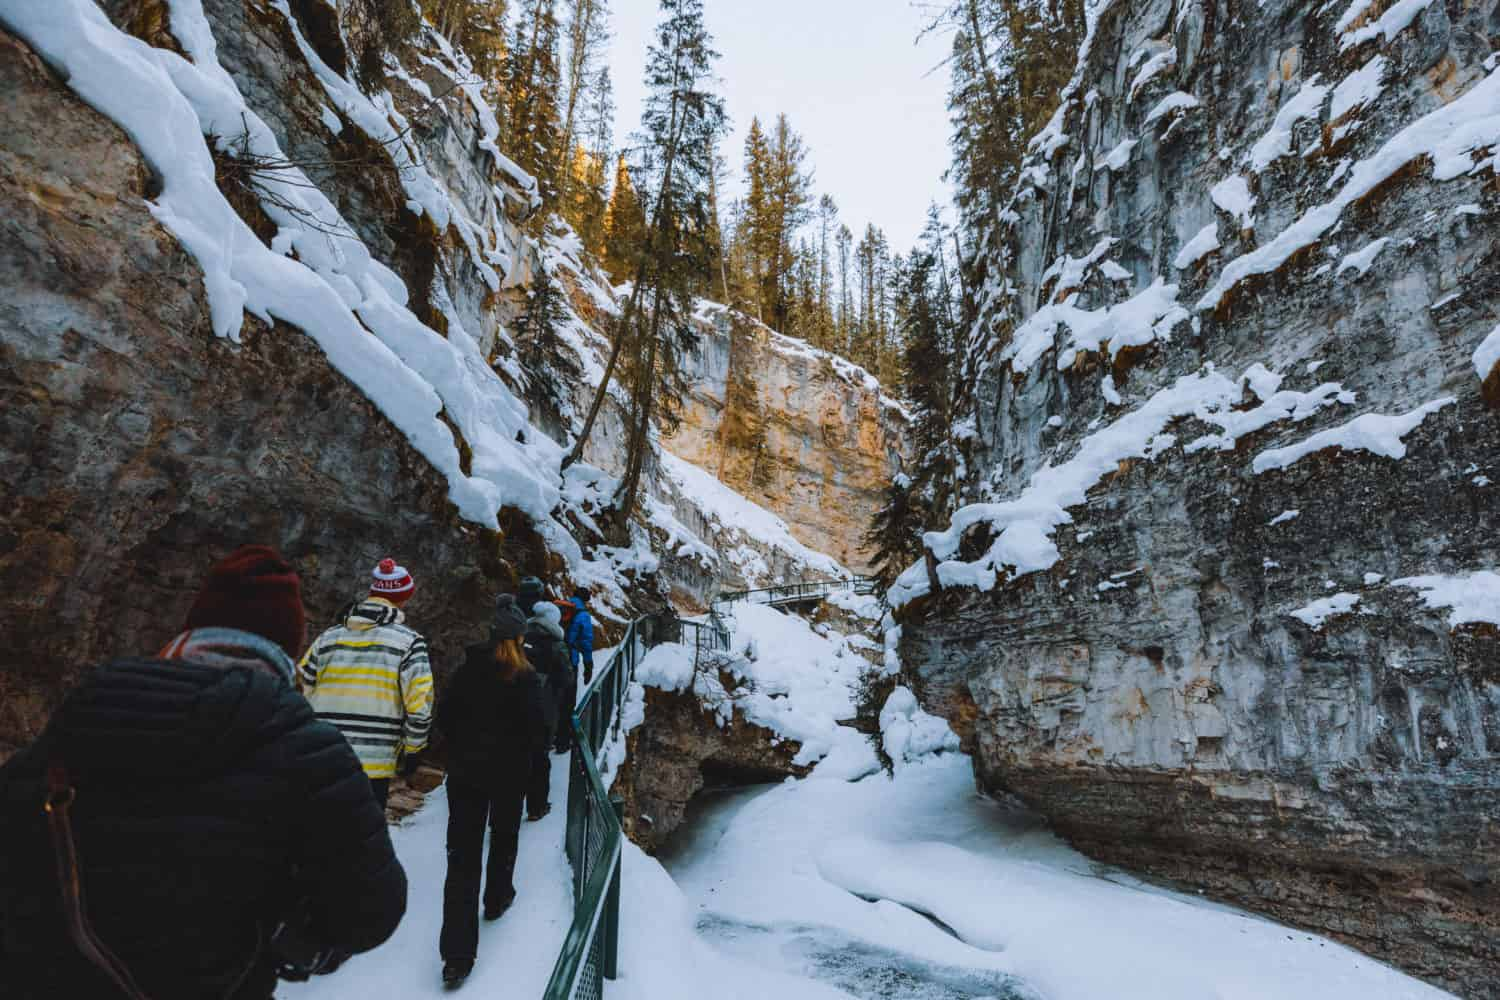 View of Gorge in Johnston Canyon in winter